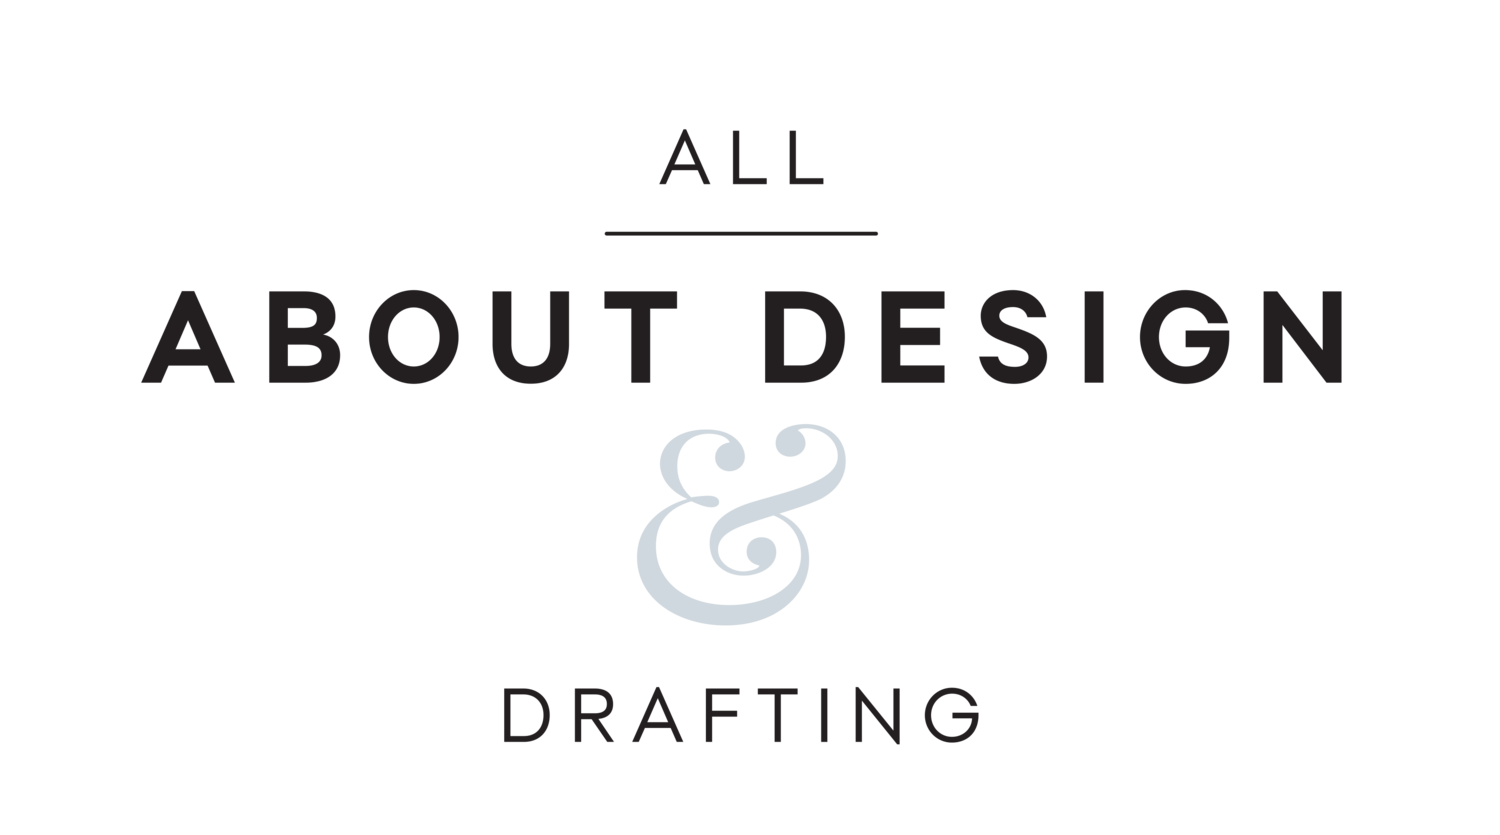 All About Design & Drafting